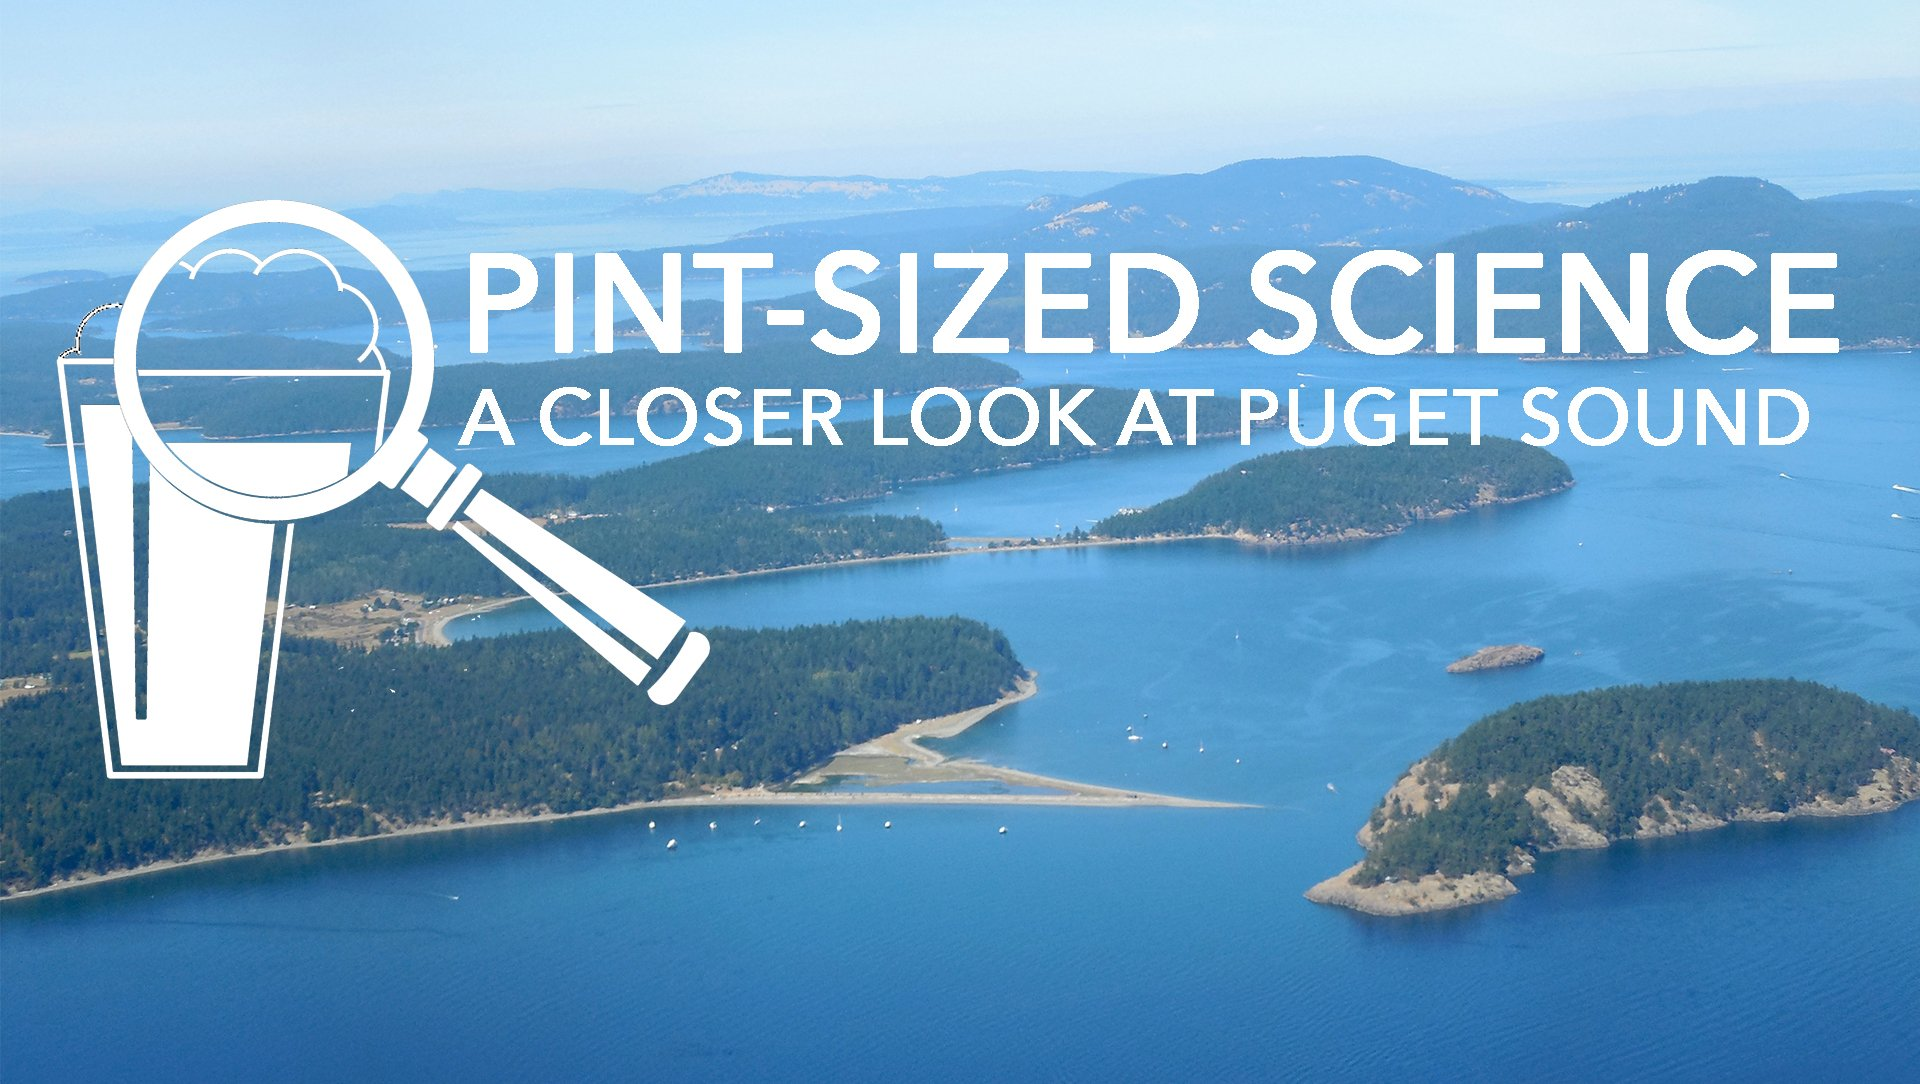 Pint-Sized Science, a closer look at Puget Sound text and logo over an image of the San Juan Islands from the air.